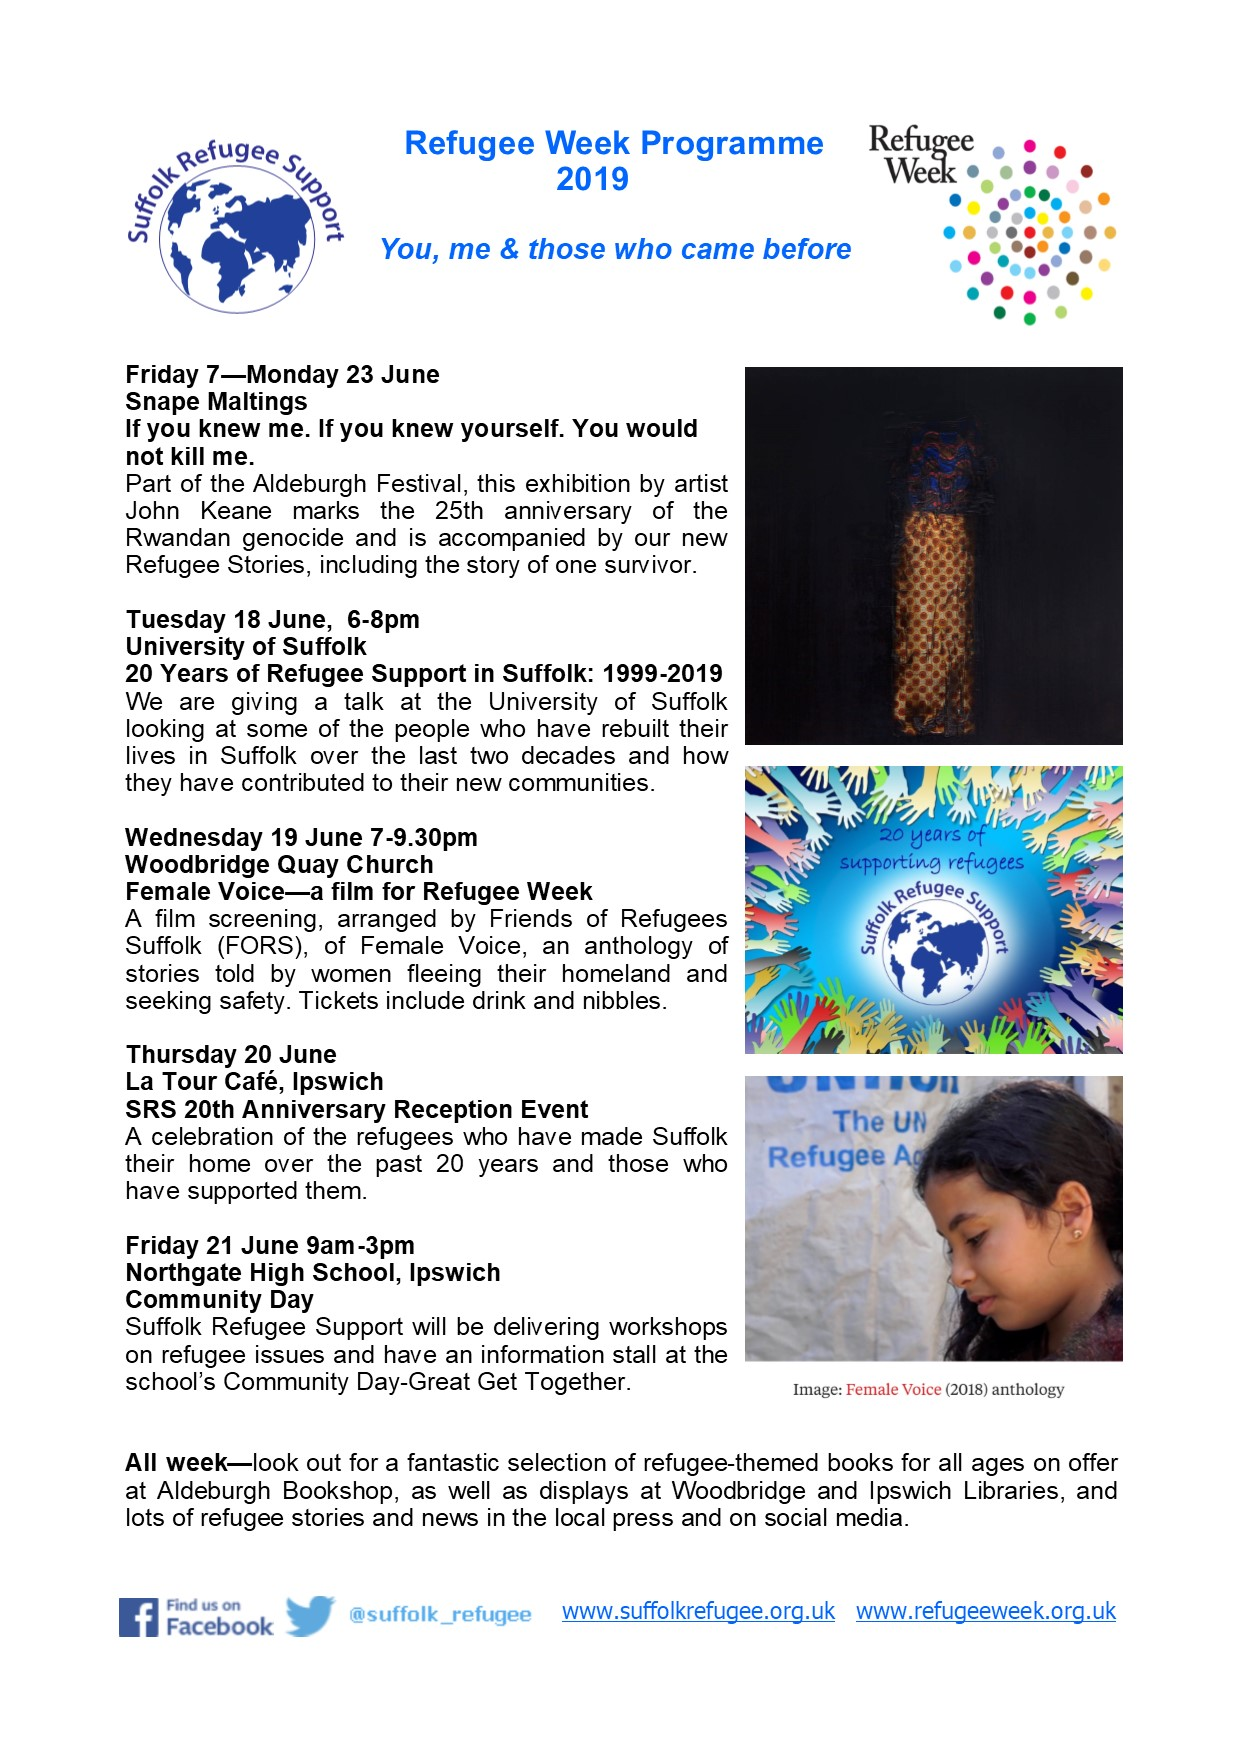 Refugee Week 2019 programme